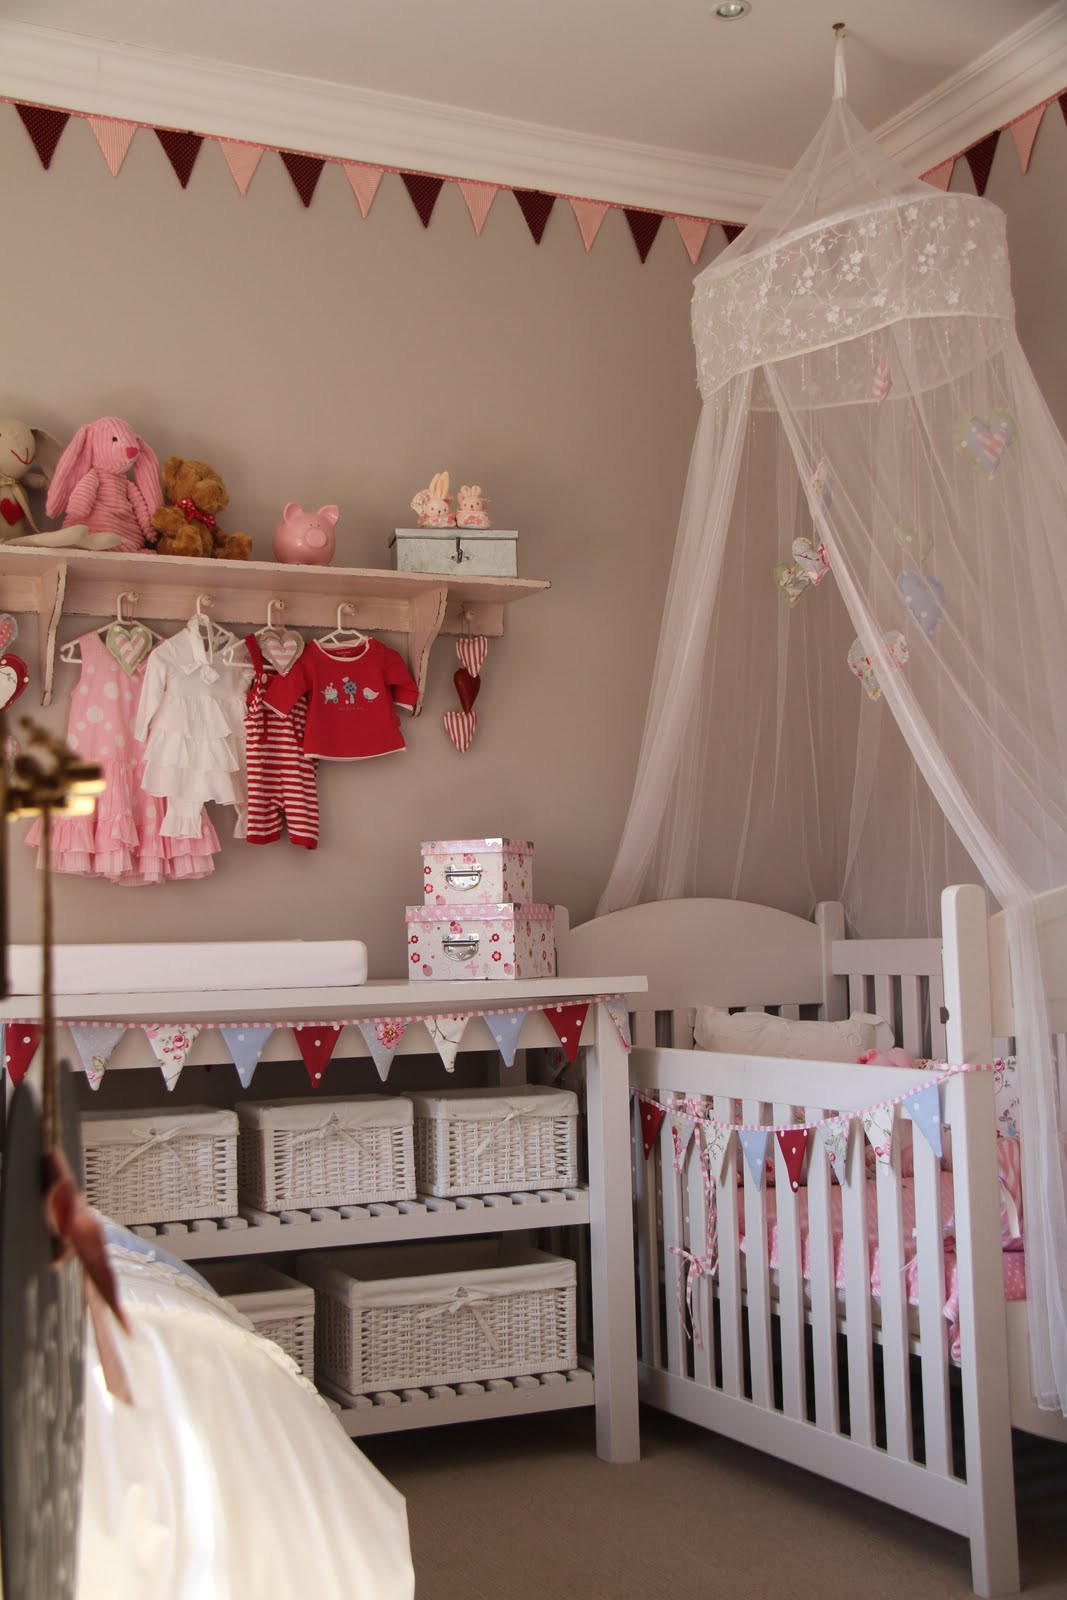 Best ideas about DIY Baby Rooms . Save or Pin I SPY PRETTY Our Baby Girl Mia s DIY Nursery Now.